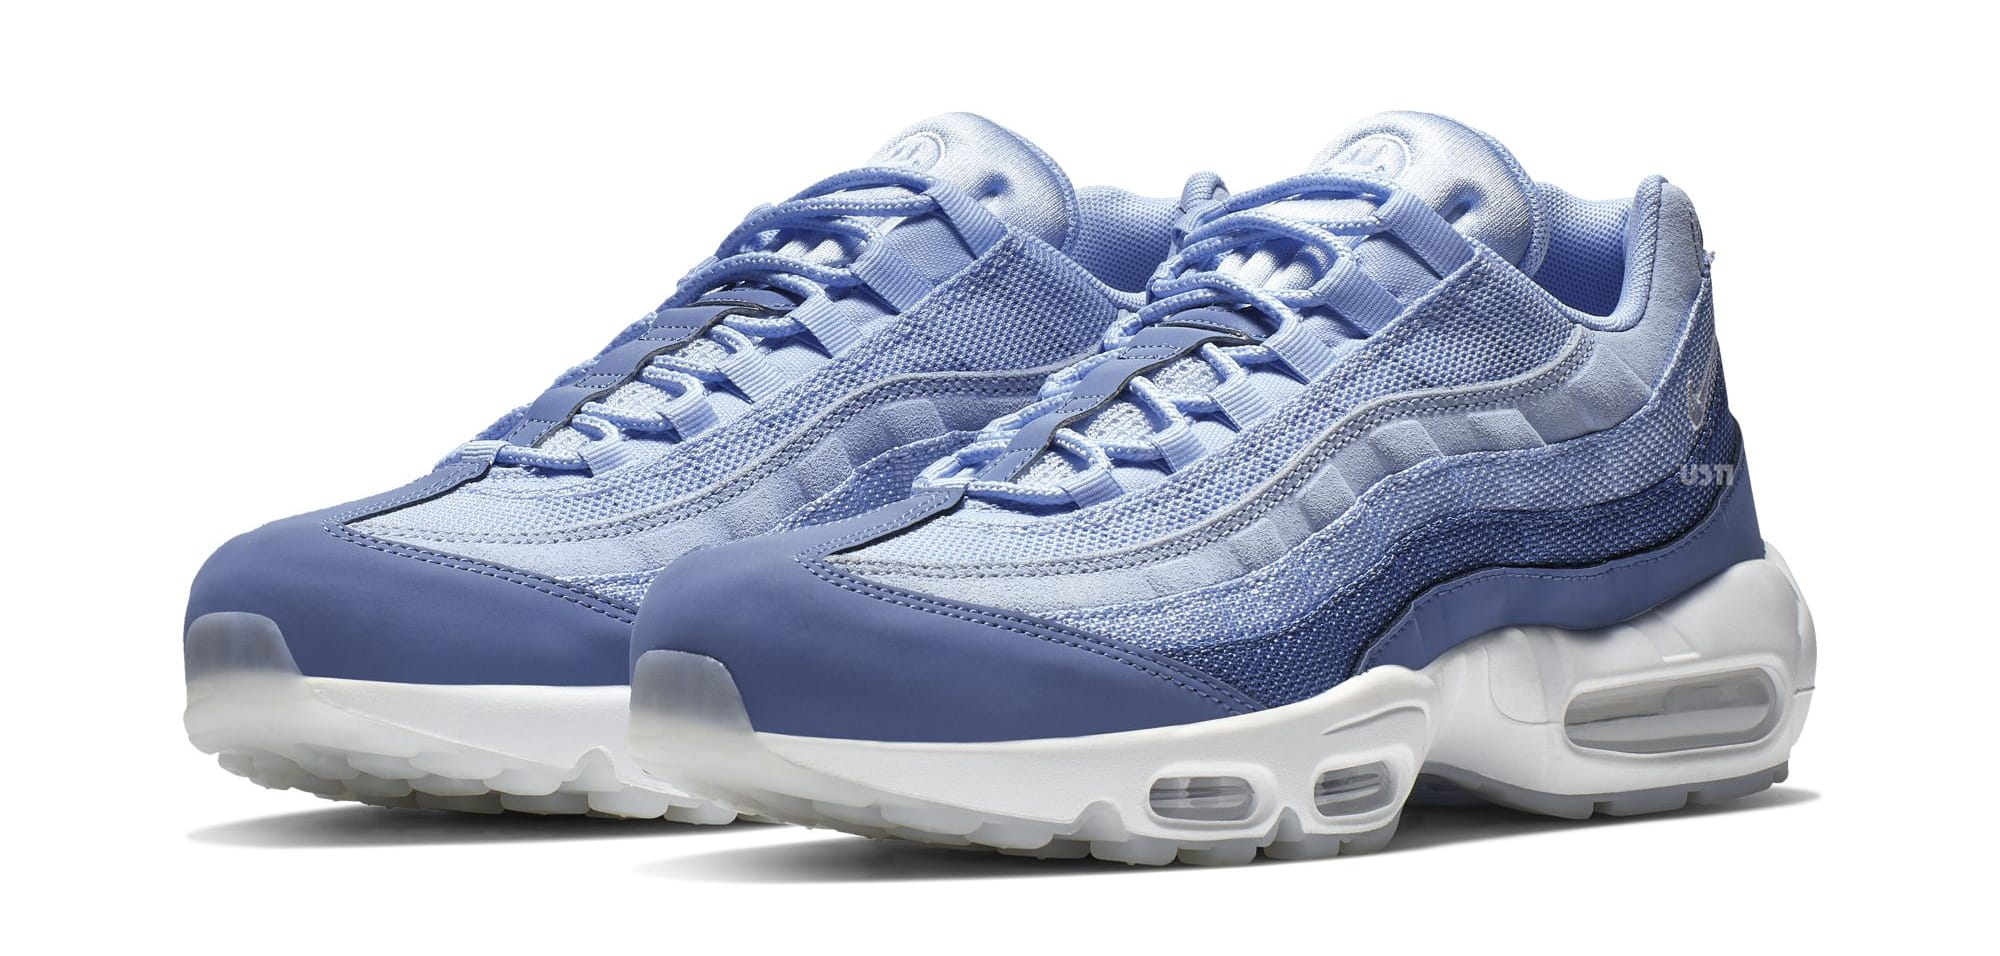 Objetivo antecedentes antena  Nike Air Max 'Have a Nike Day' Pack March 2019 Release Date | Sole Collector